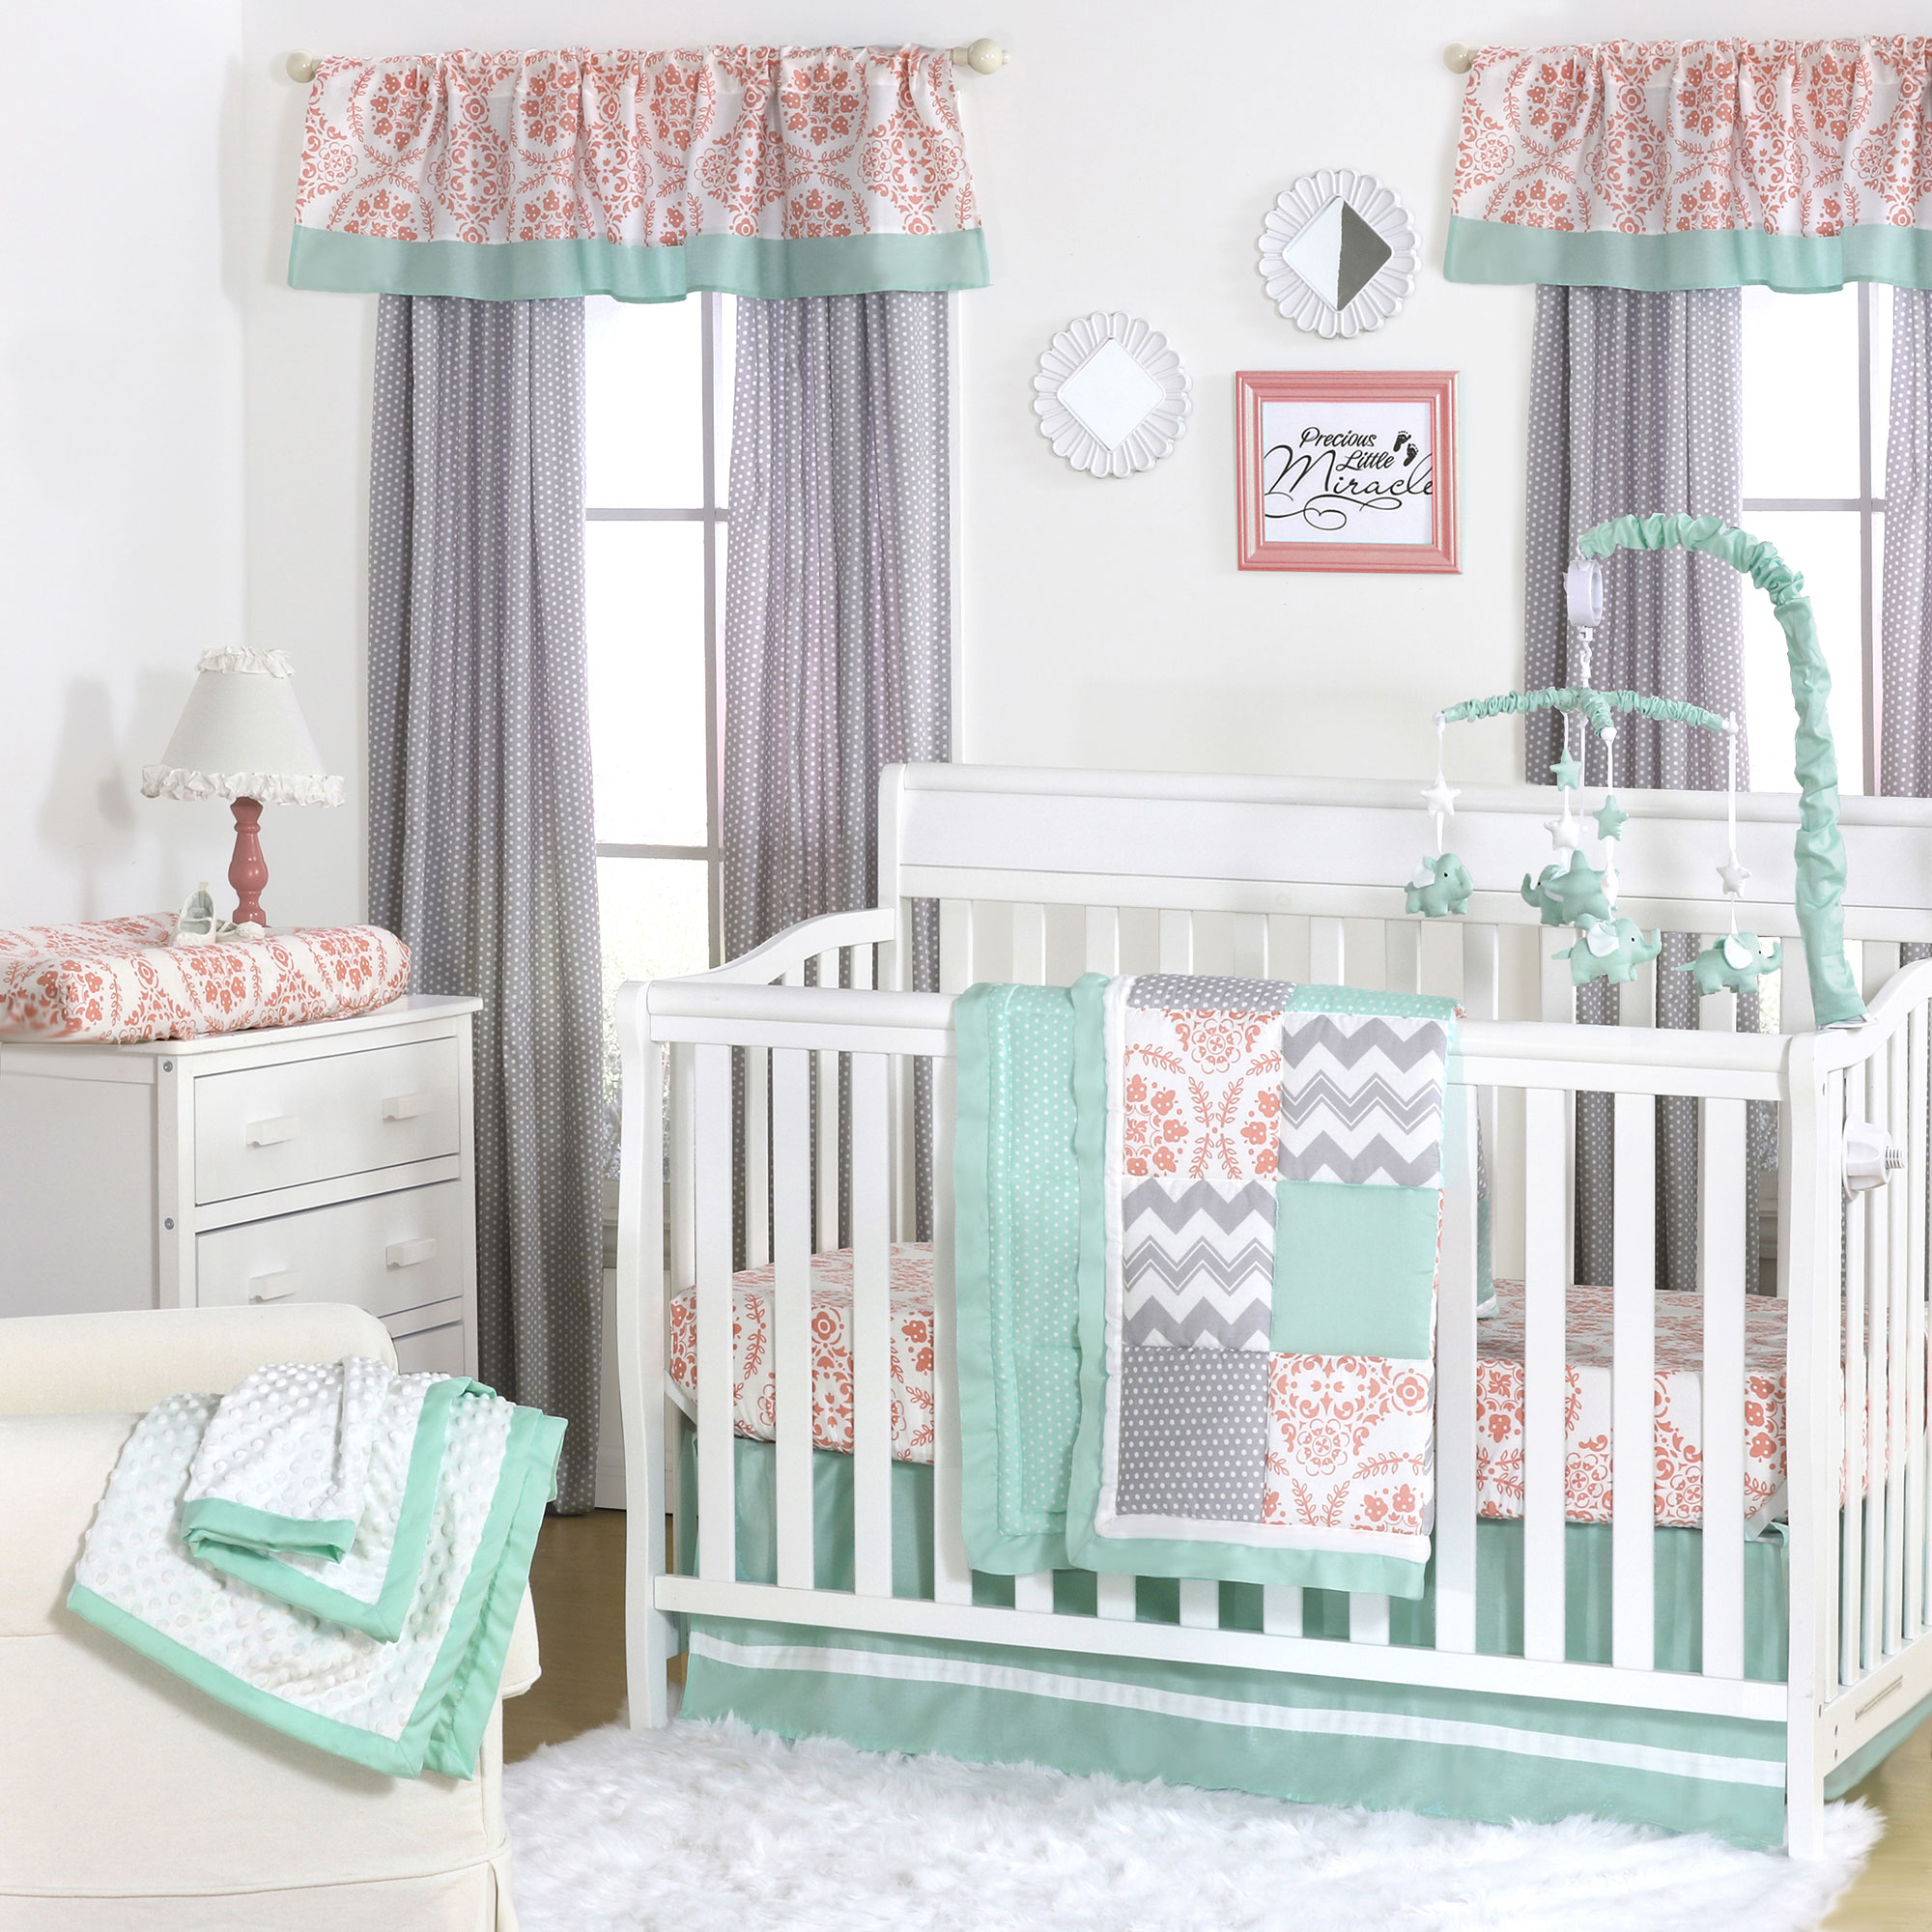 Details About Mint Coral And Grey Patchwork 3 Piece Baby Crib Bedding Set By The Peanut Shell